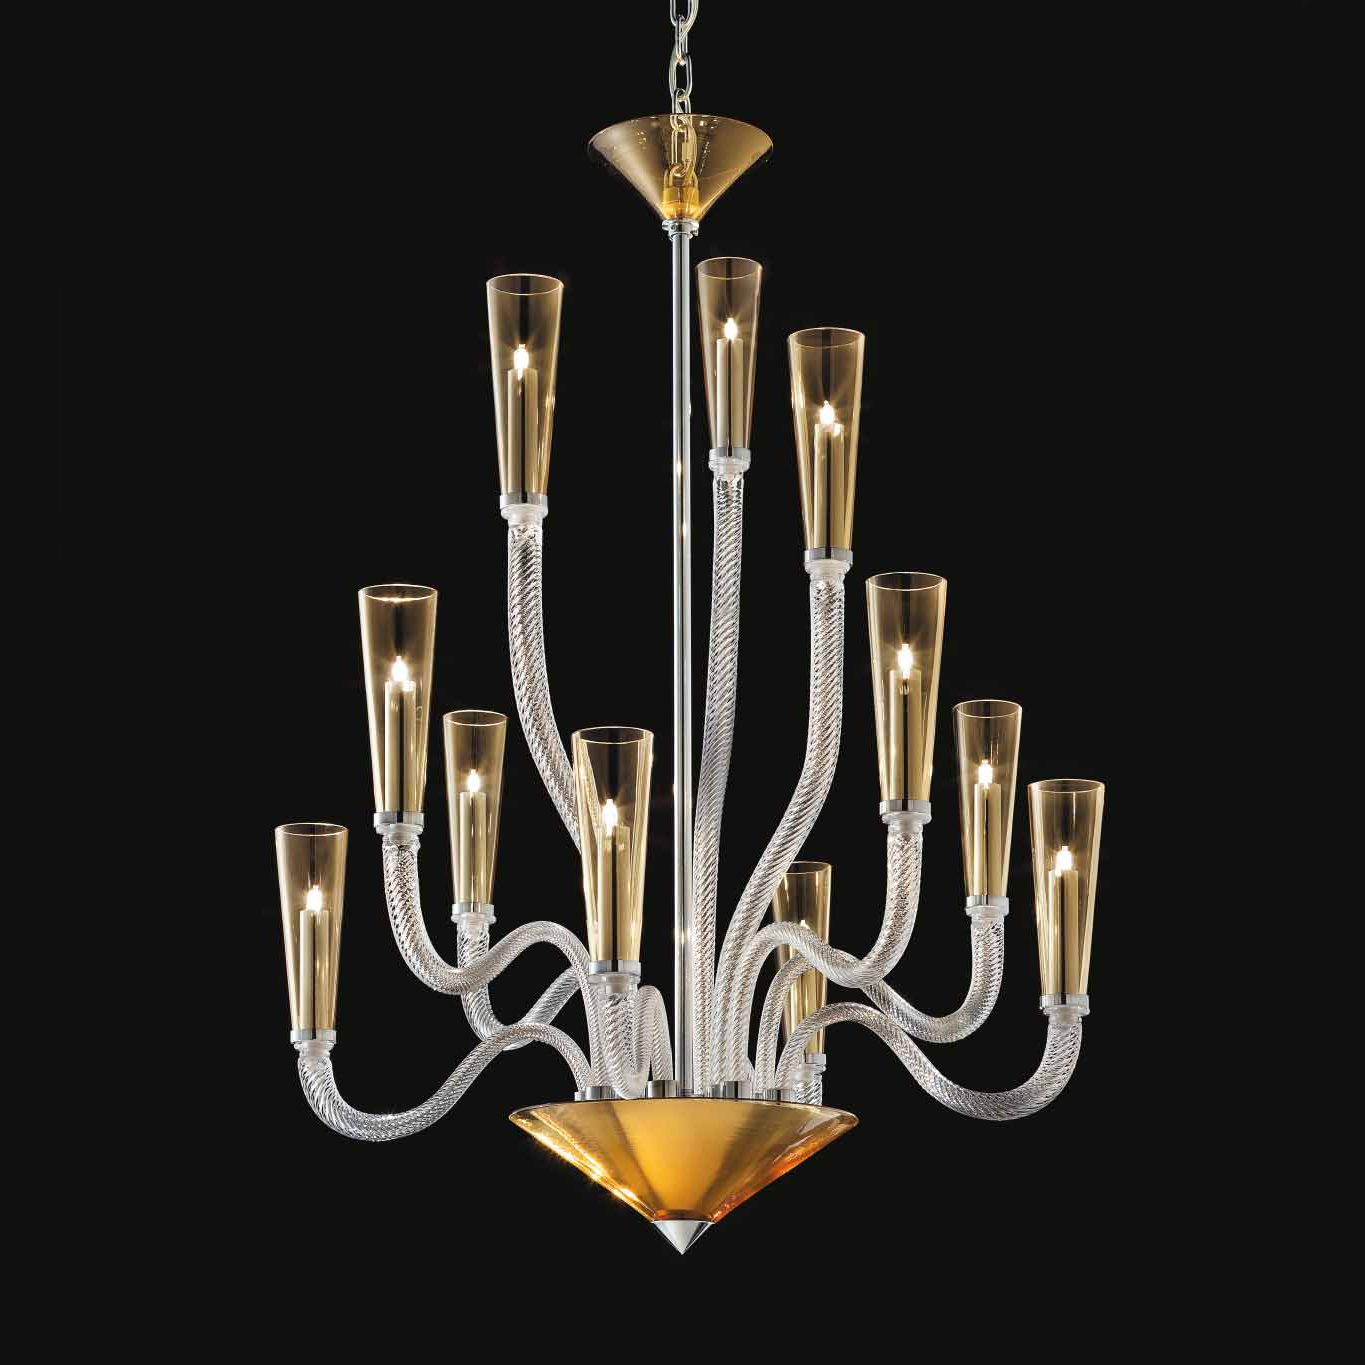 Chandelier Pure Joy Interior Design